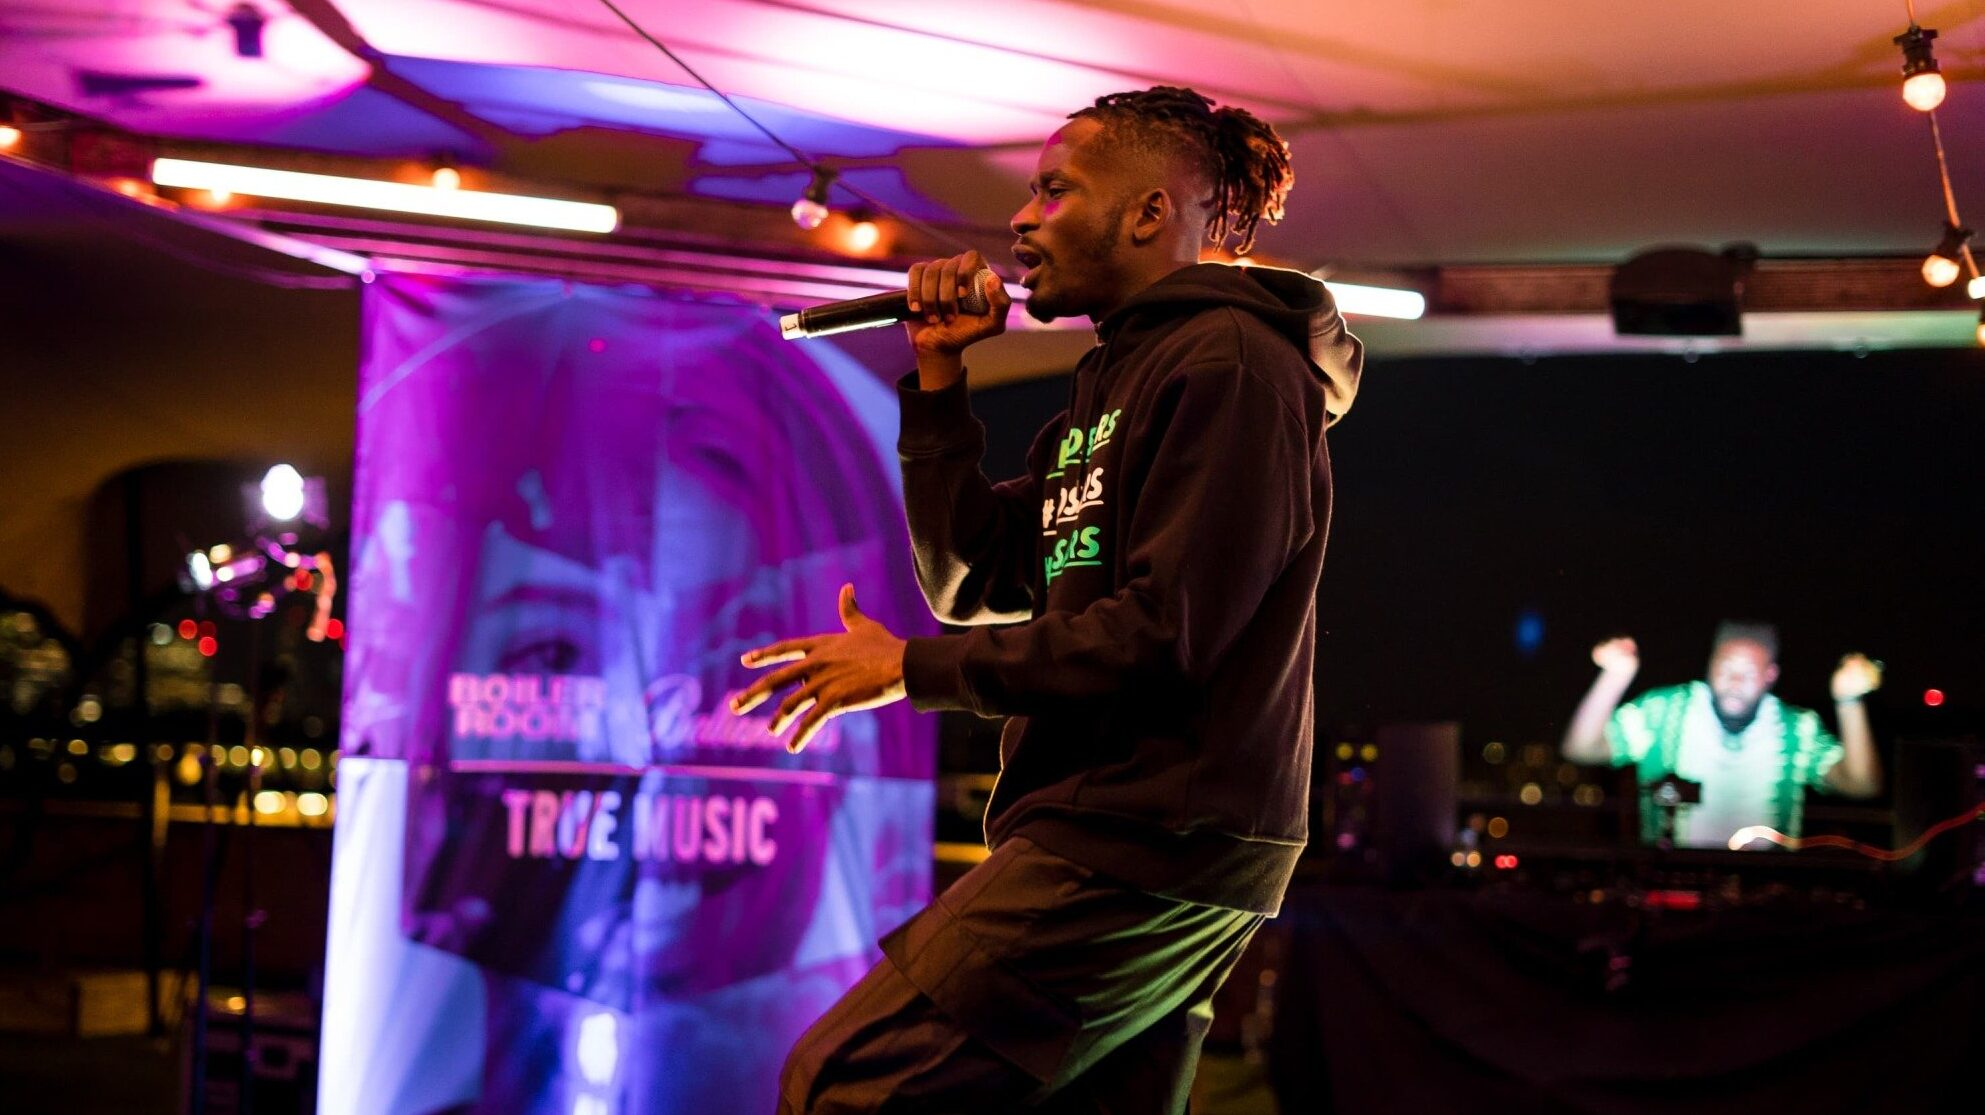 Mr Eazi performing in London for Boiler Room and Ballantine's